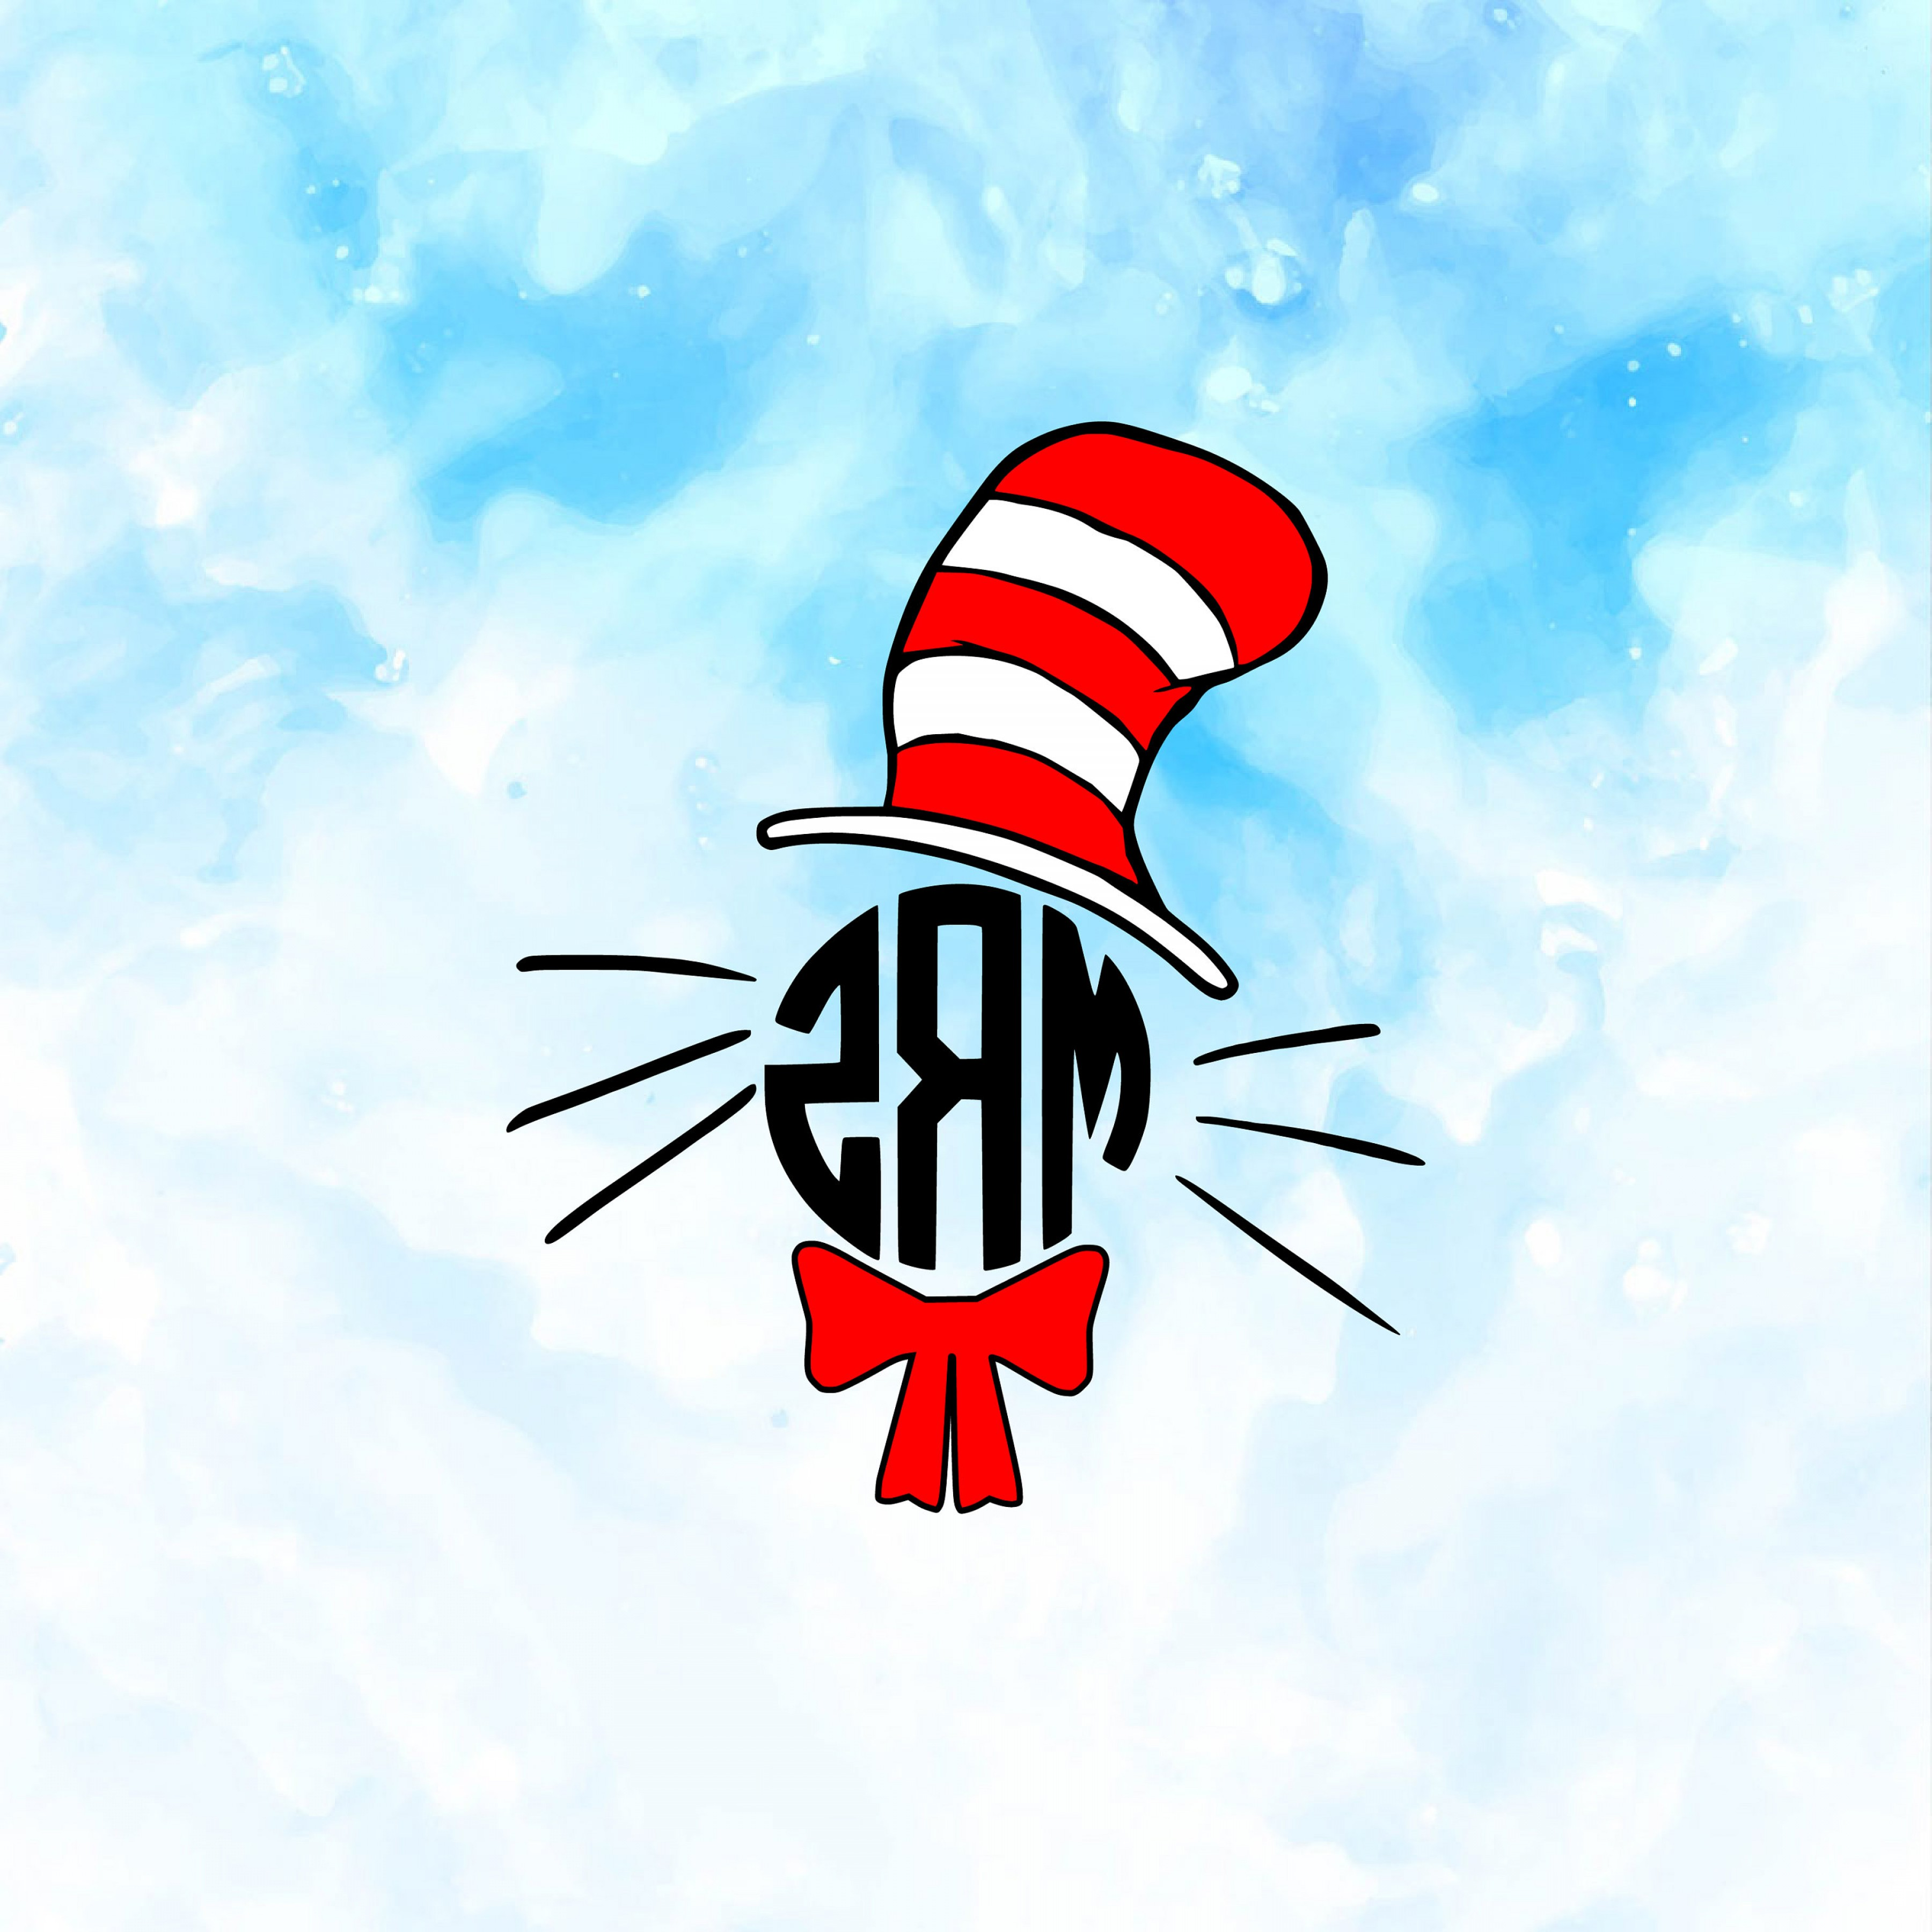 Dr. Seuss Hat Vector: Cat In The Hat Svg Dr Seuss Svg Dr Seuss Svg Files Cat In The Hat Cricut Files Thing Silhouette Files